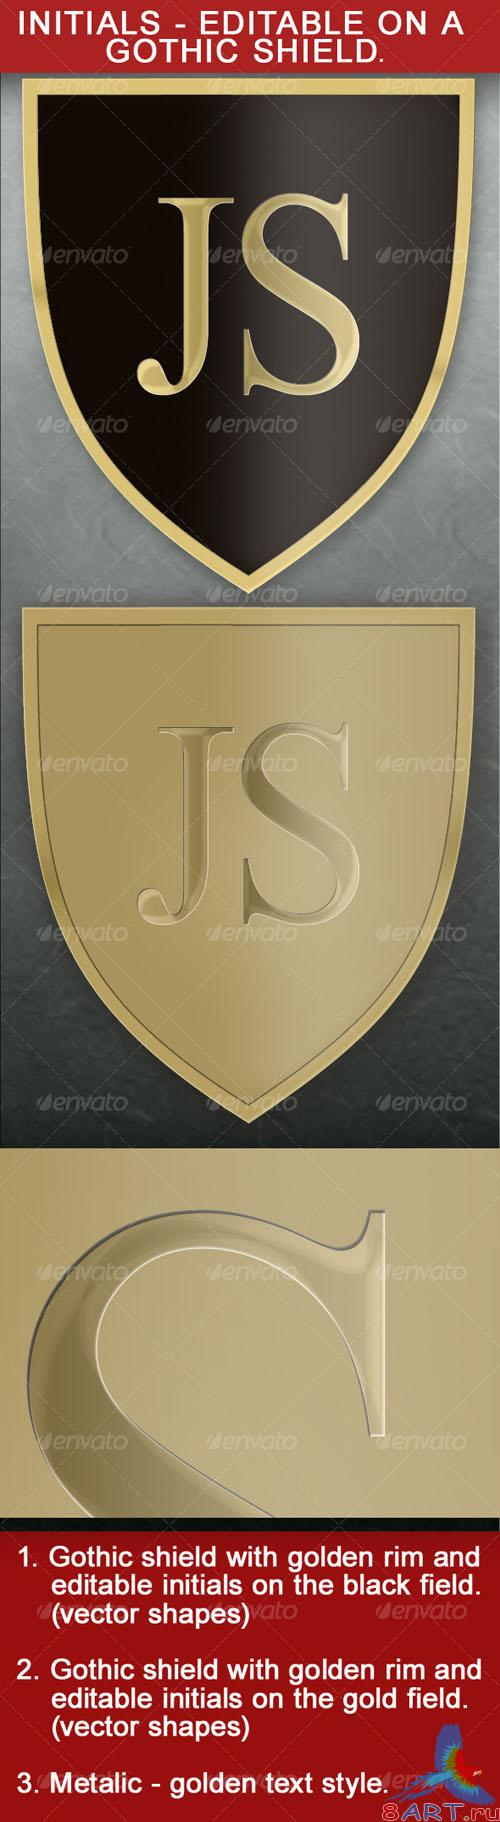 Gothic Shield With Editable Initials – GraphicRiver